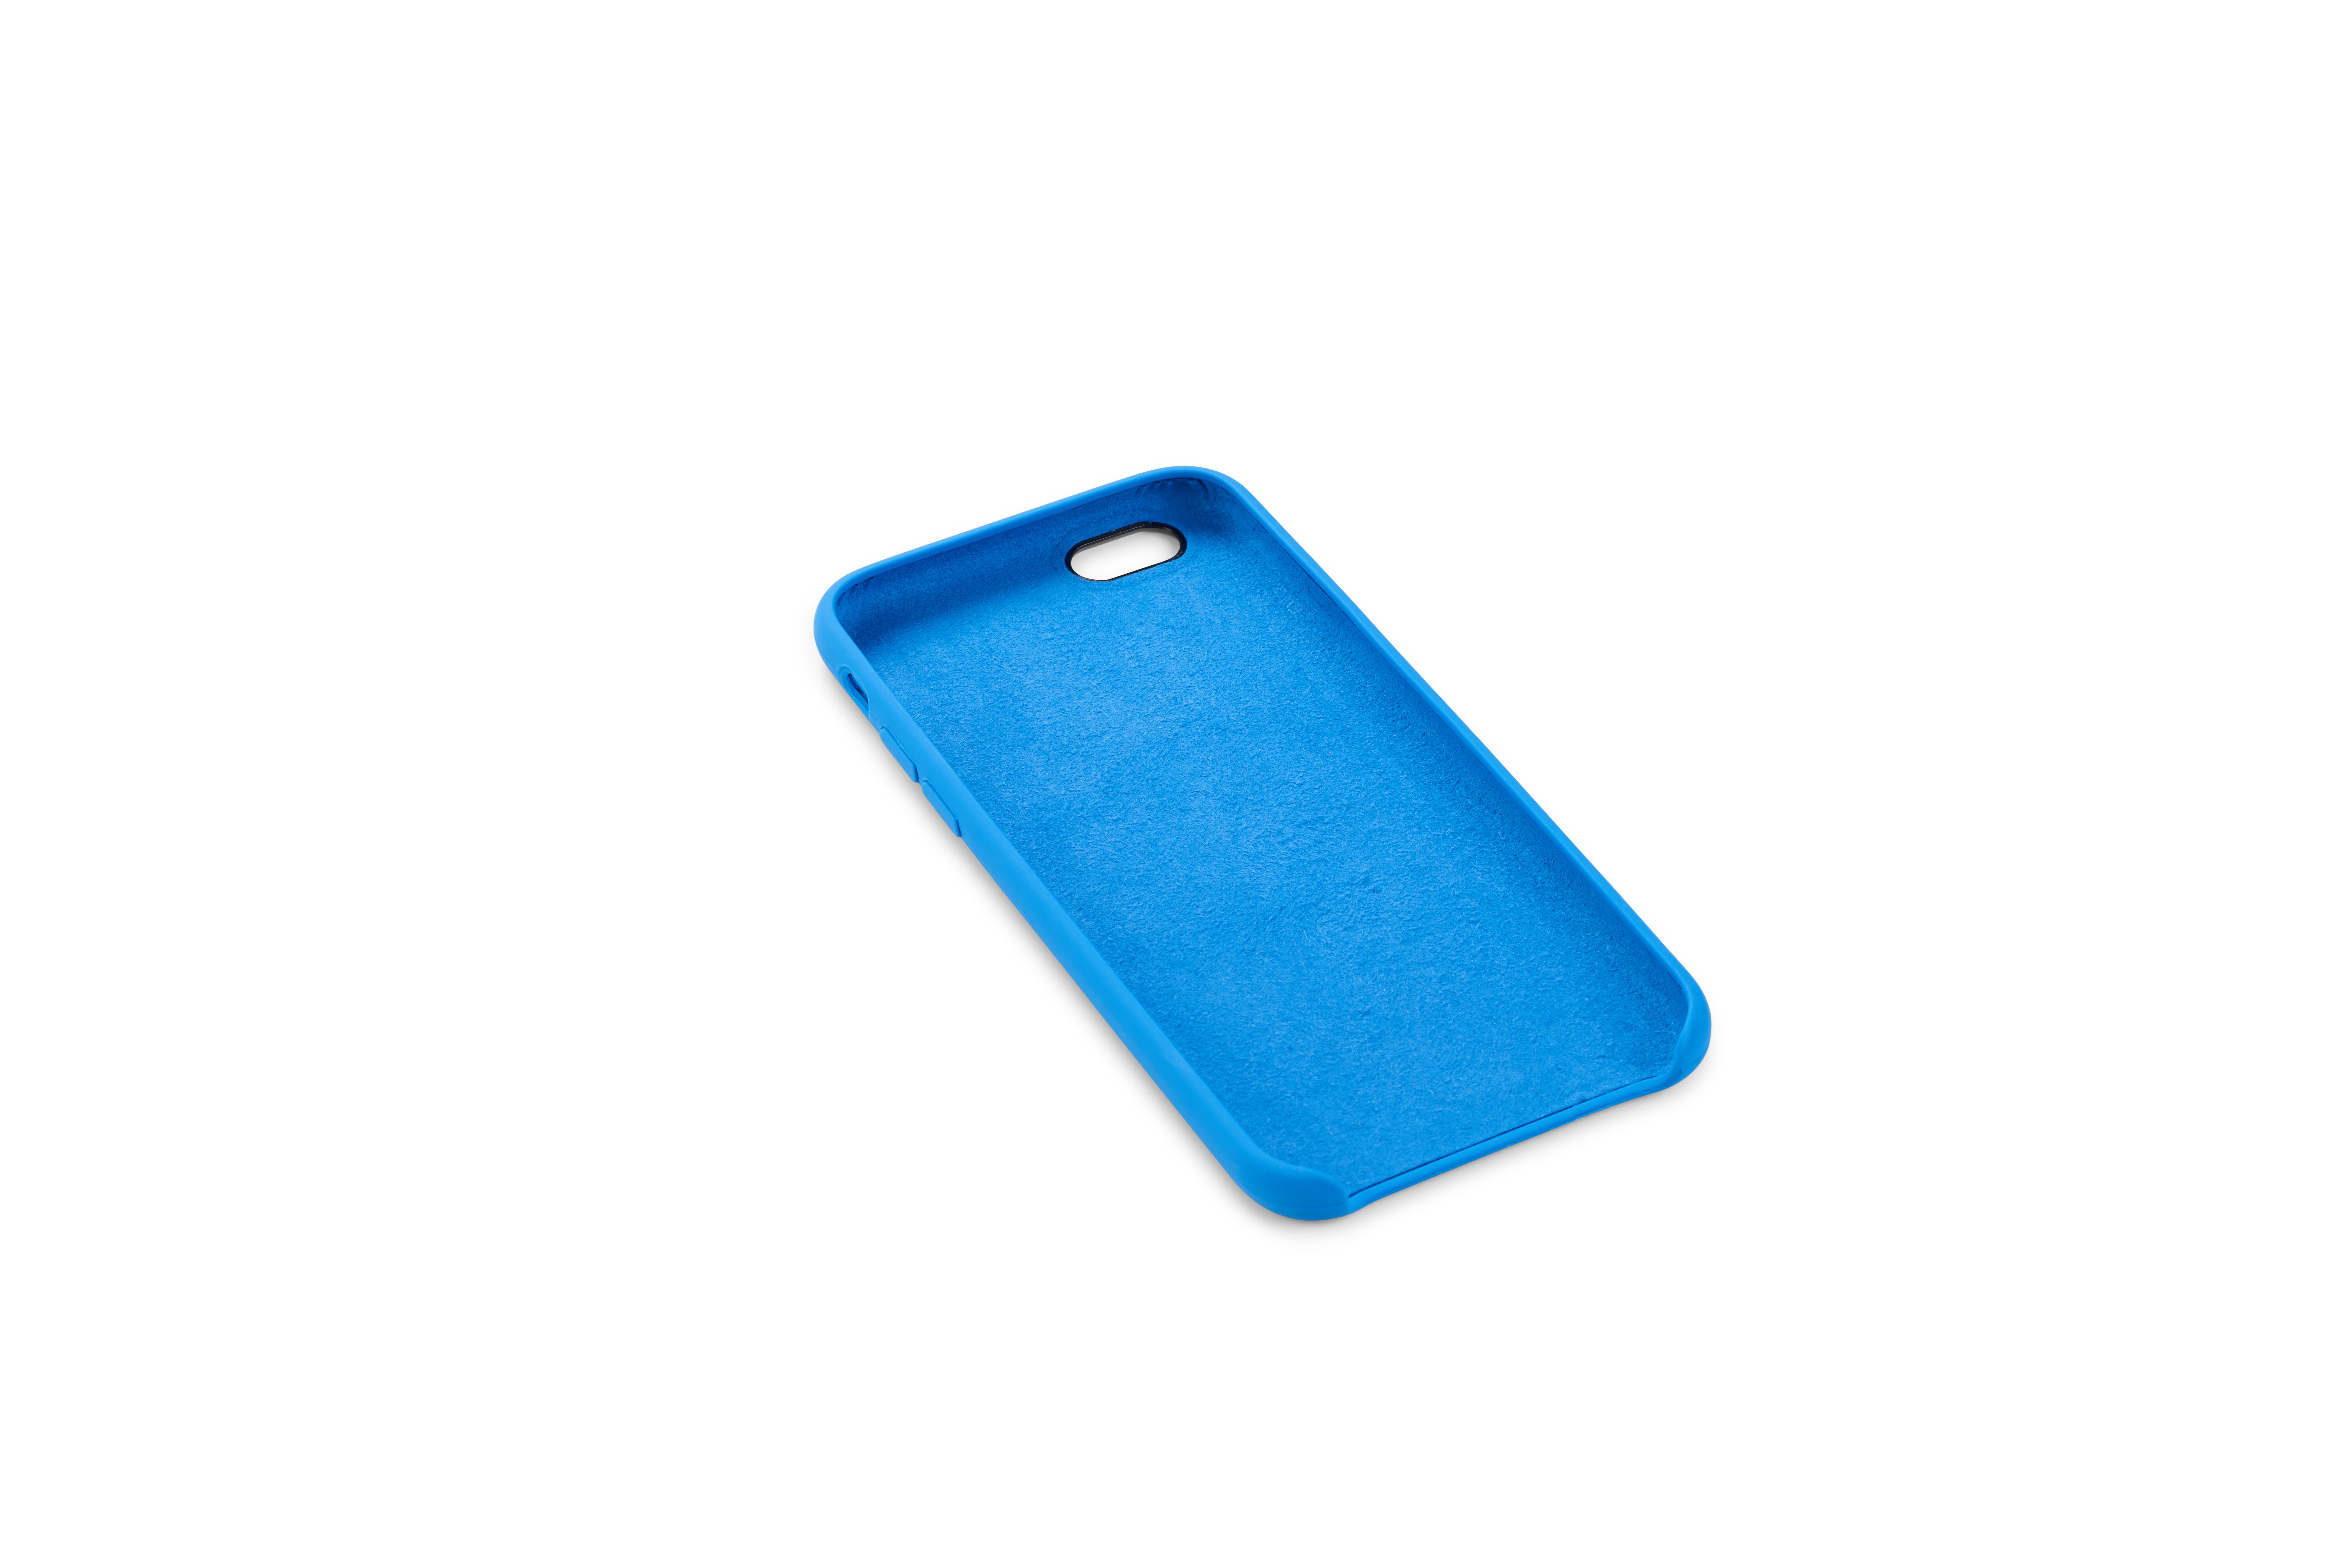 FUNDA IPHONE 6 FURGO AZUL - Ítem - 1